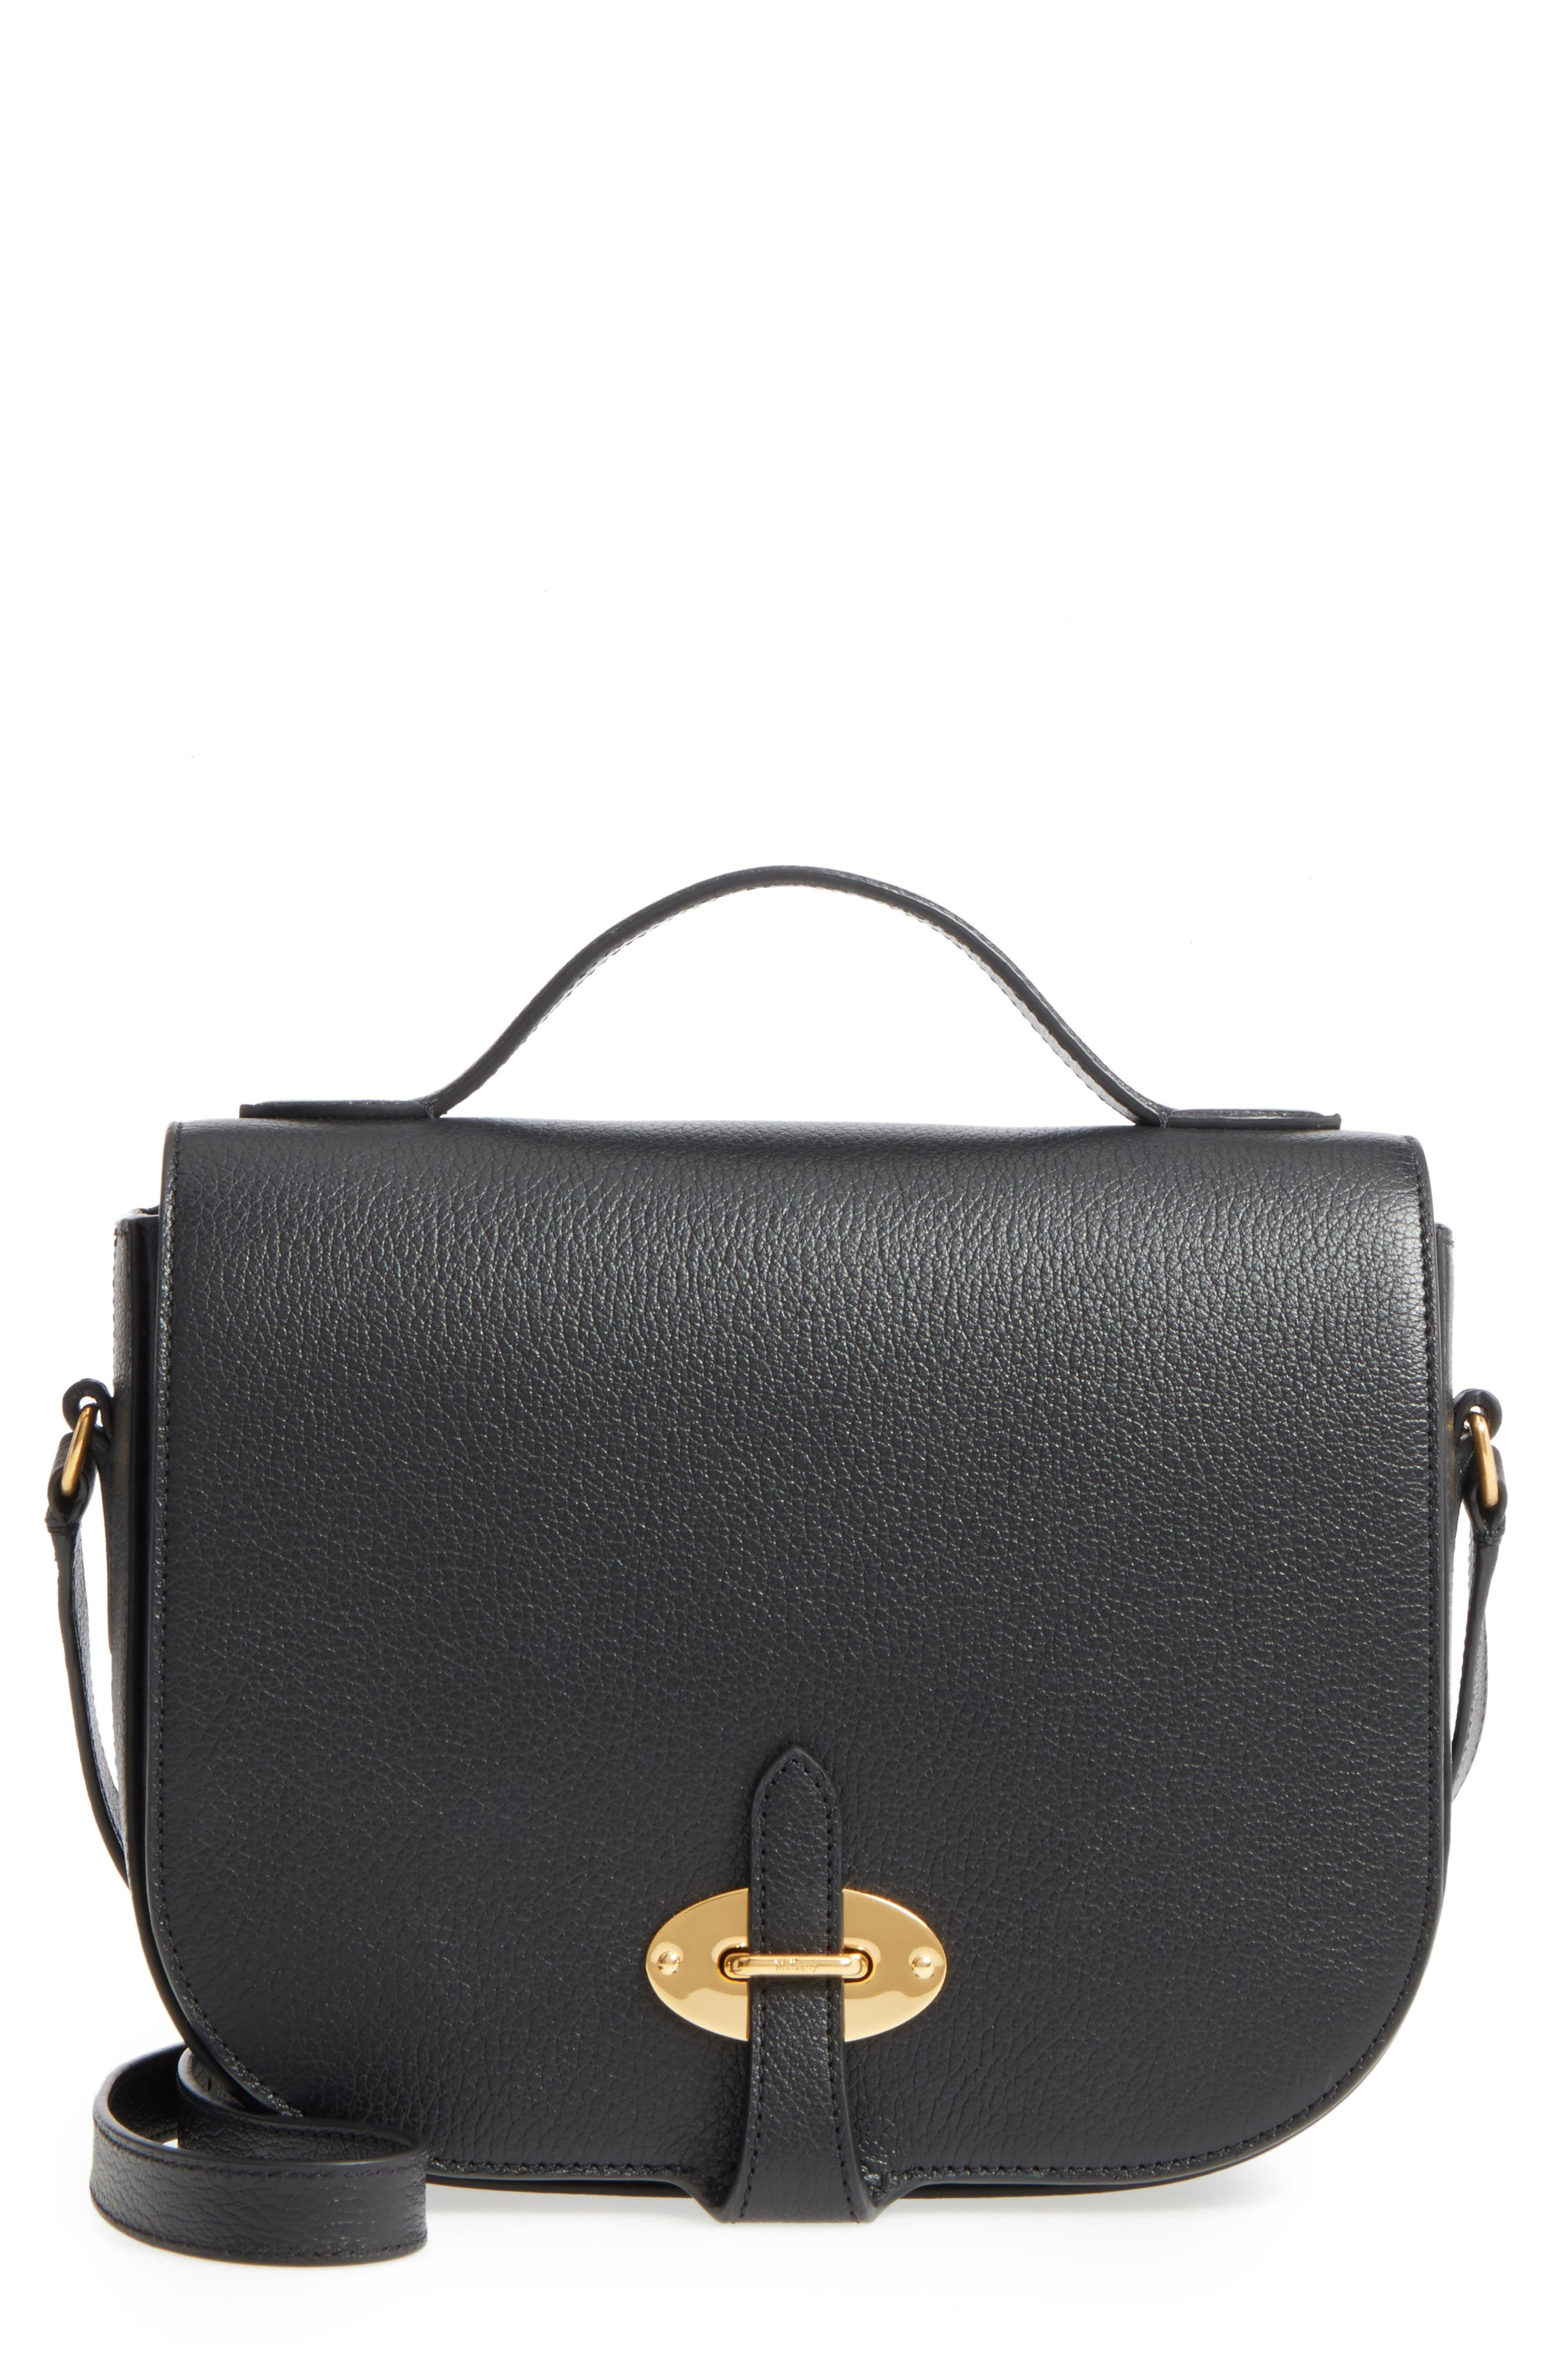 Main Image - Mulberry Tenby Calfskin Leather Crossbody Bag